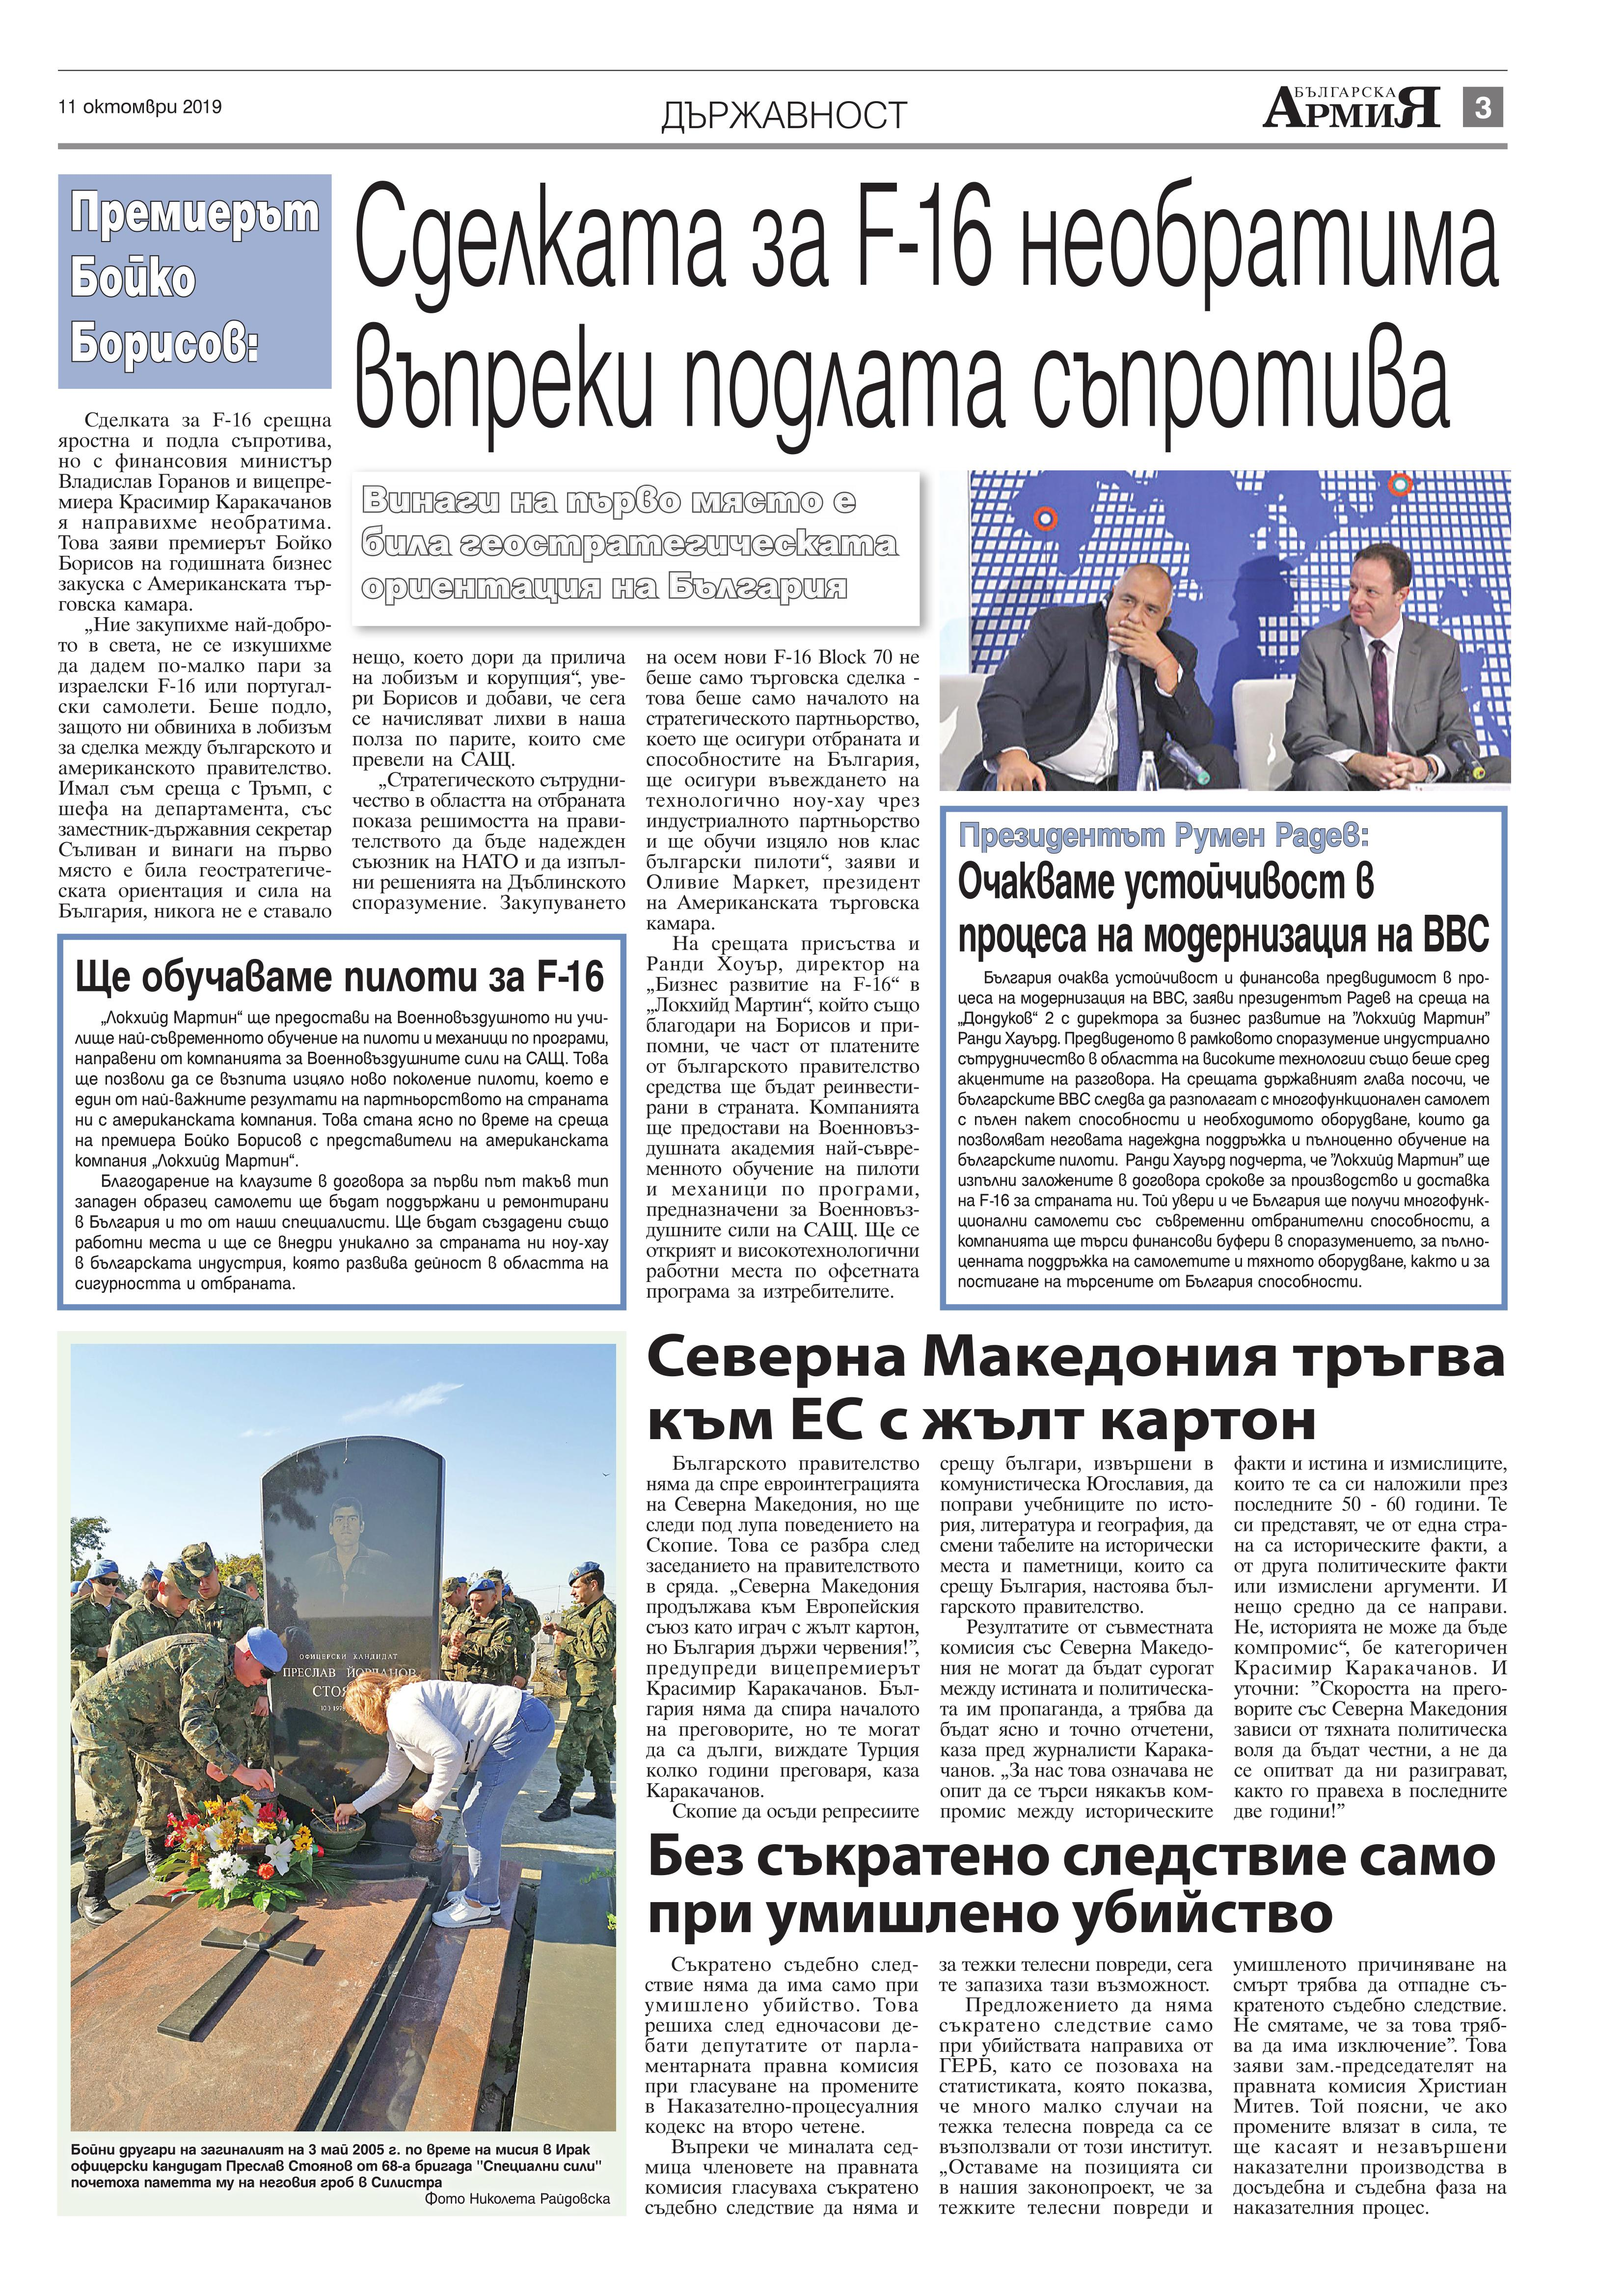 https://www.armymedia.bg/wp-content/uploads/2015/06/03.page1_-108.jpg